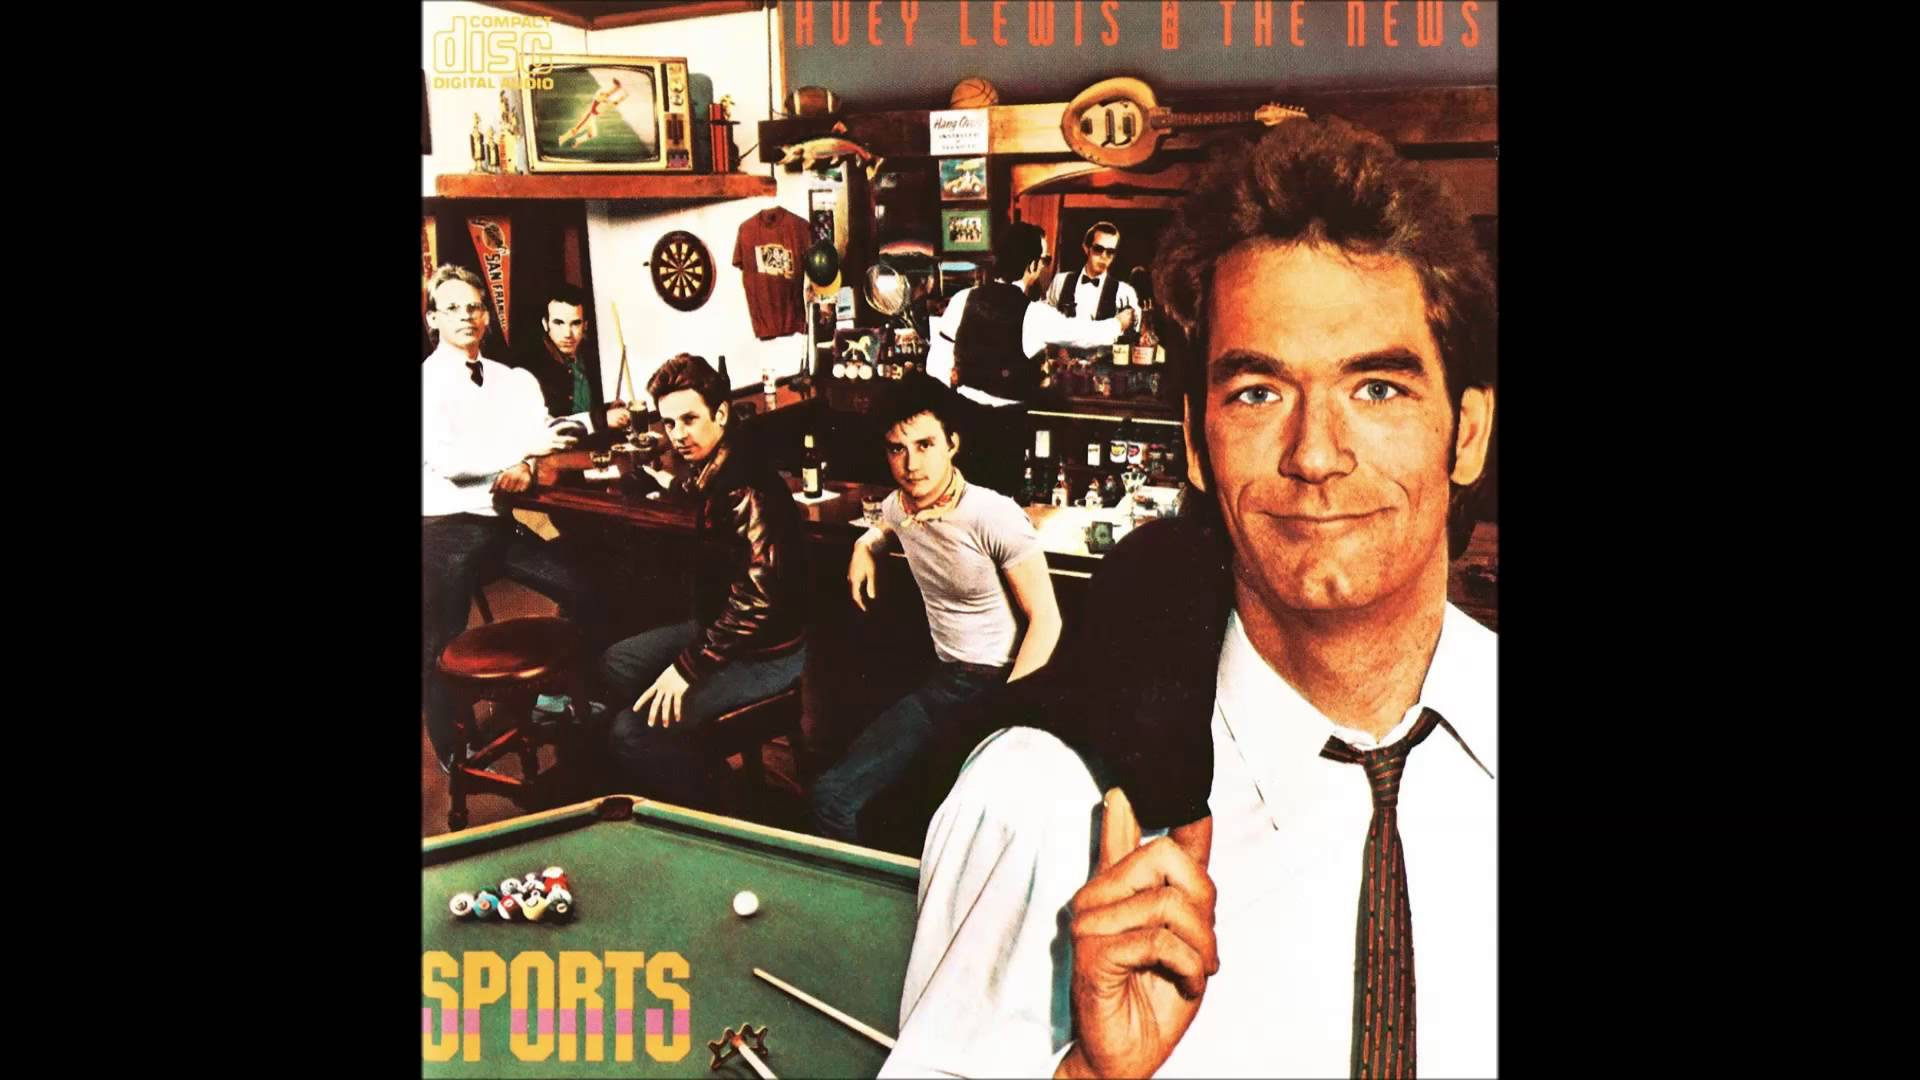 Art for The Heart of Rock & Roll by Huey Lewis & The News